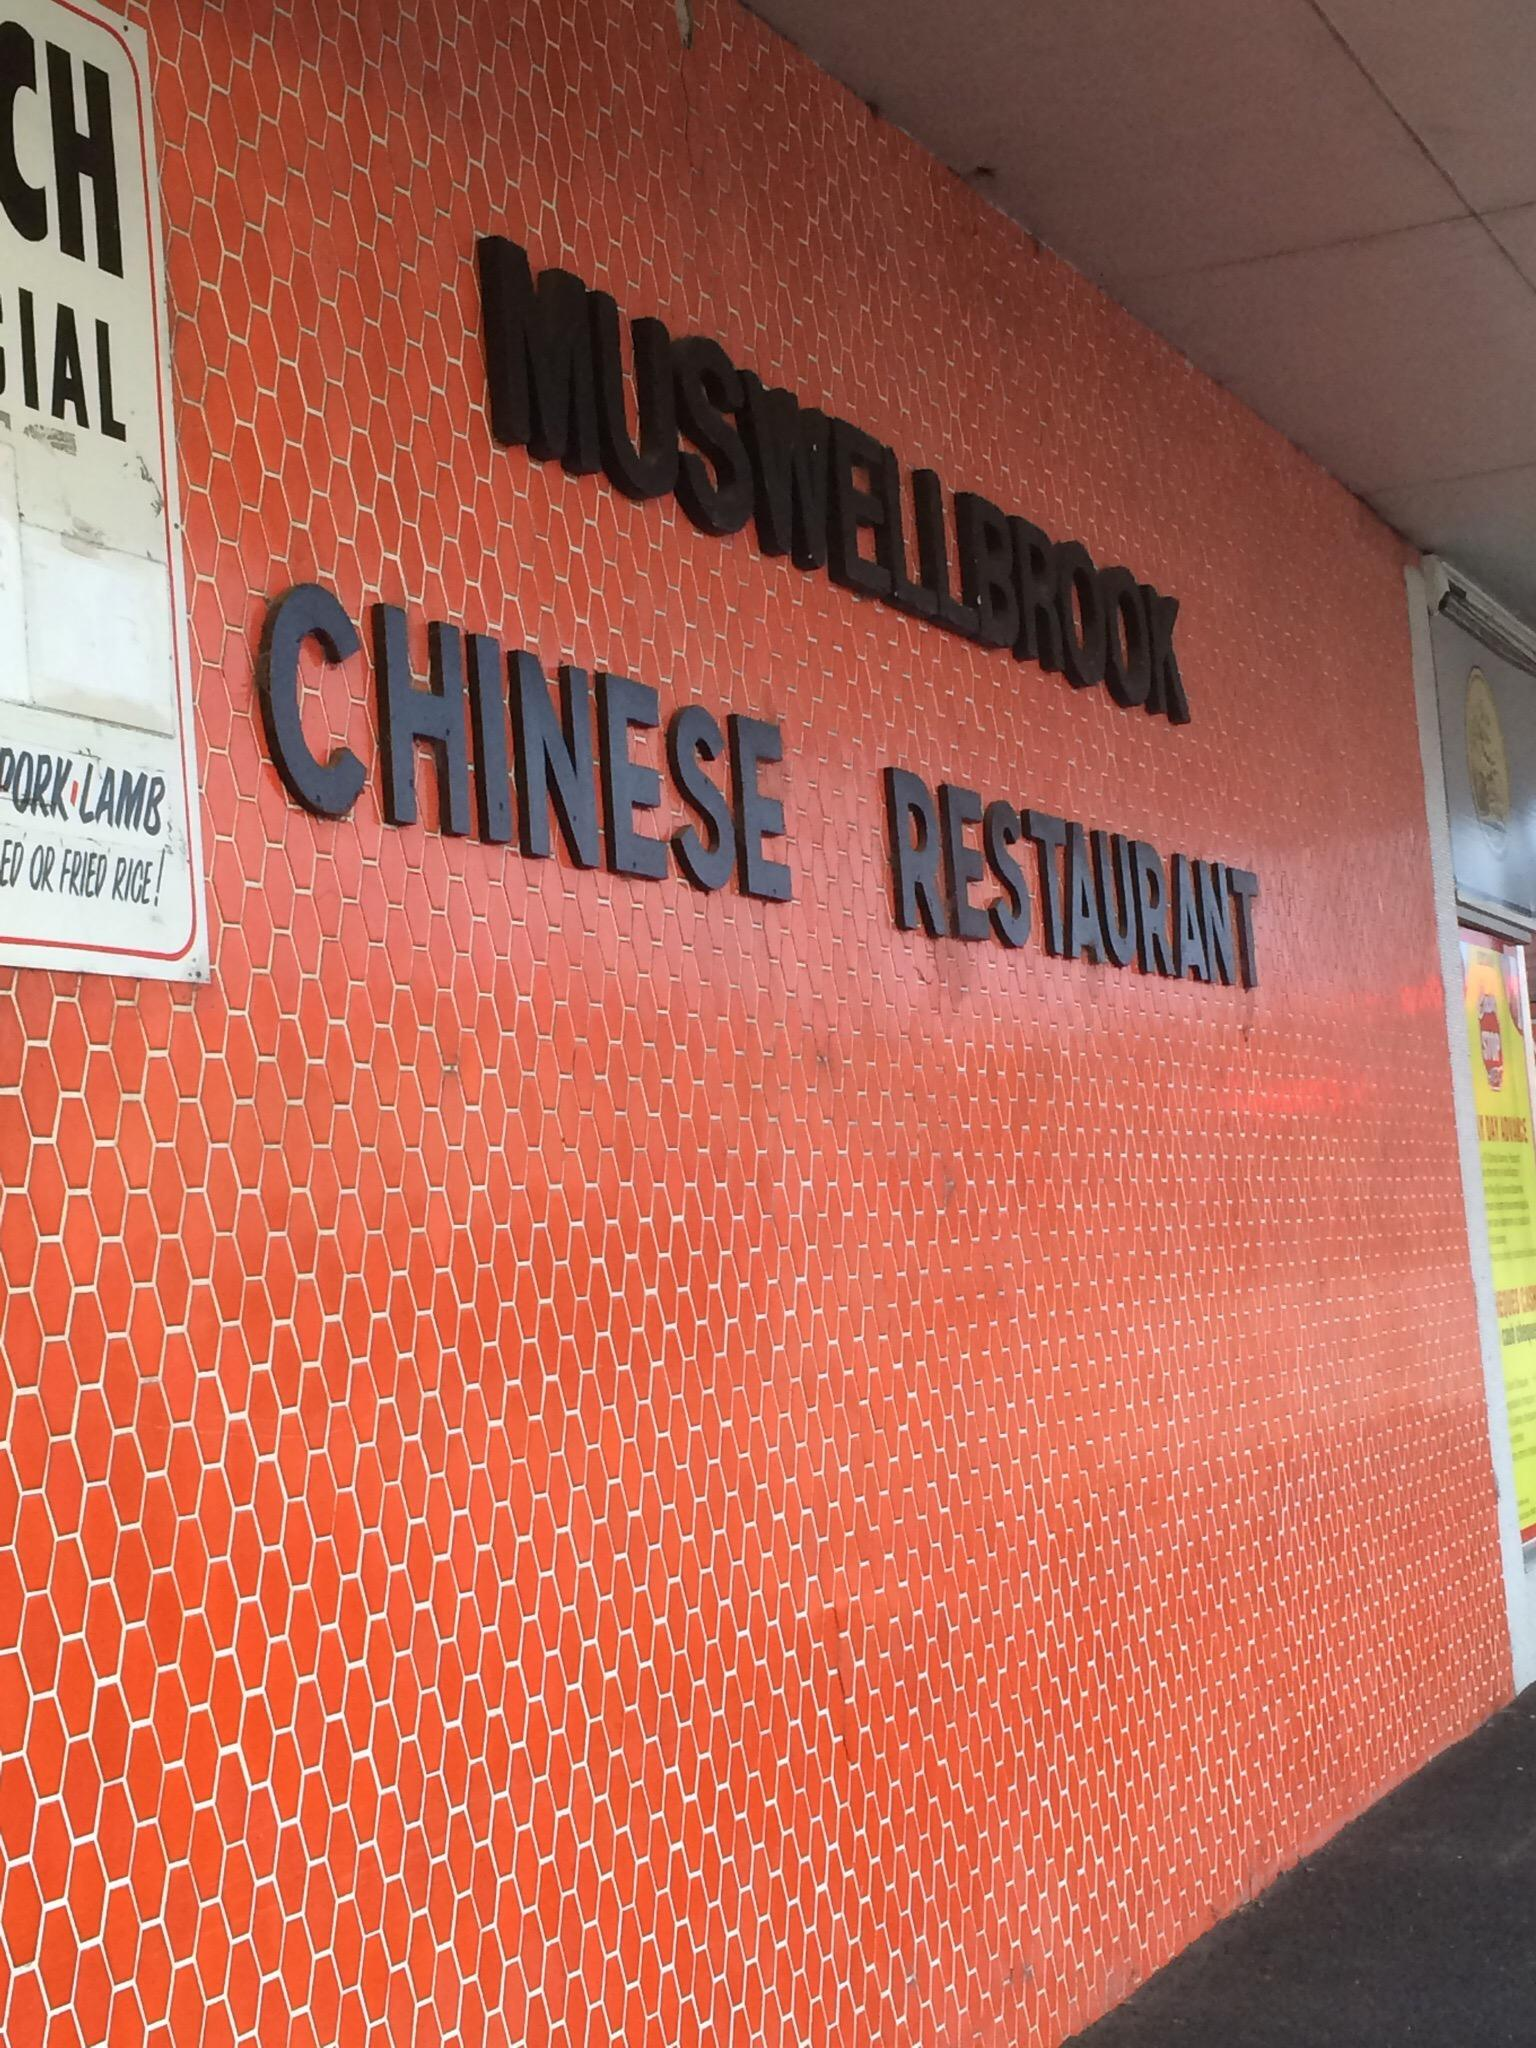 Muswellbrook Chinese Restaurant | 51 Sydney Street, Muswellbrook, New South Wales 2333 | +61 2 6543 2636